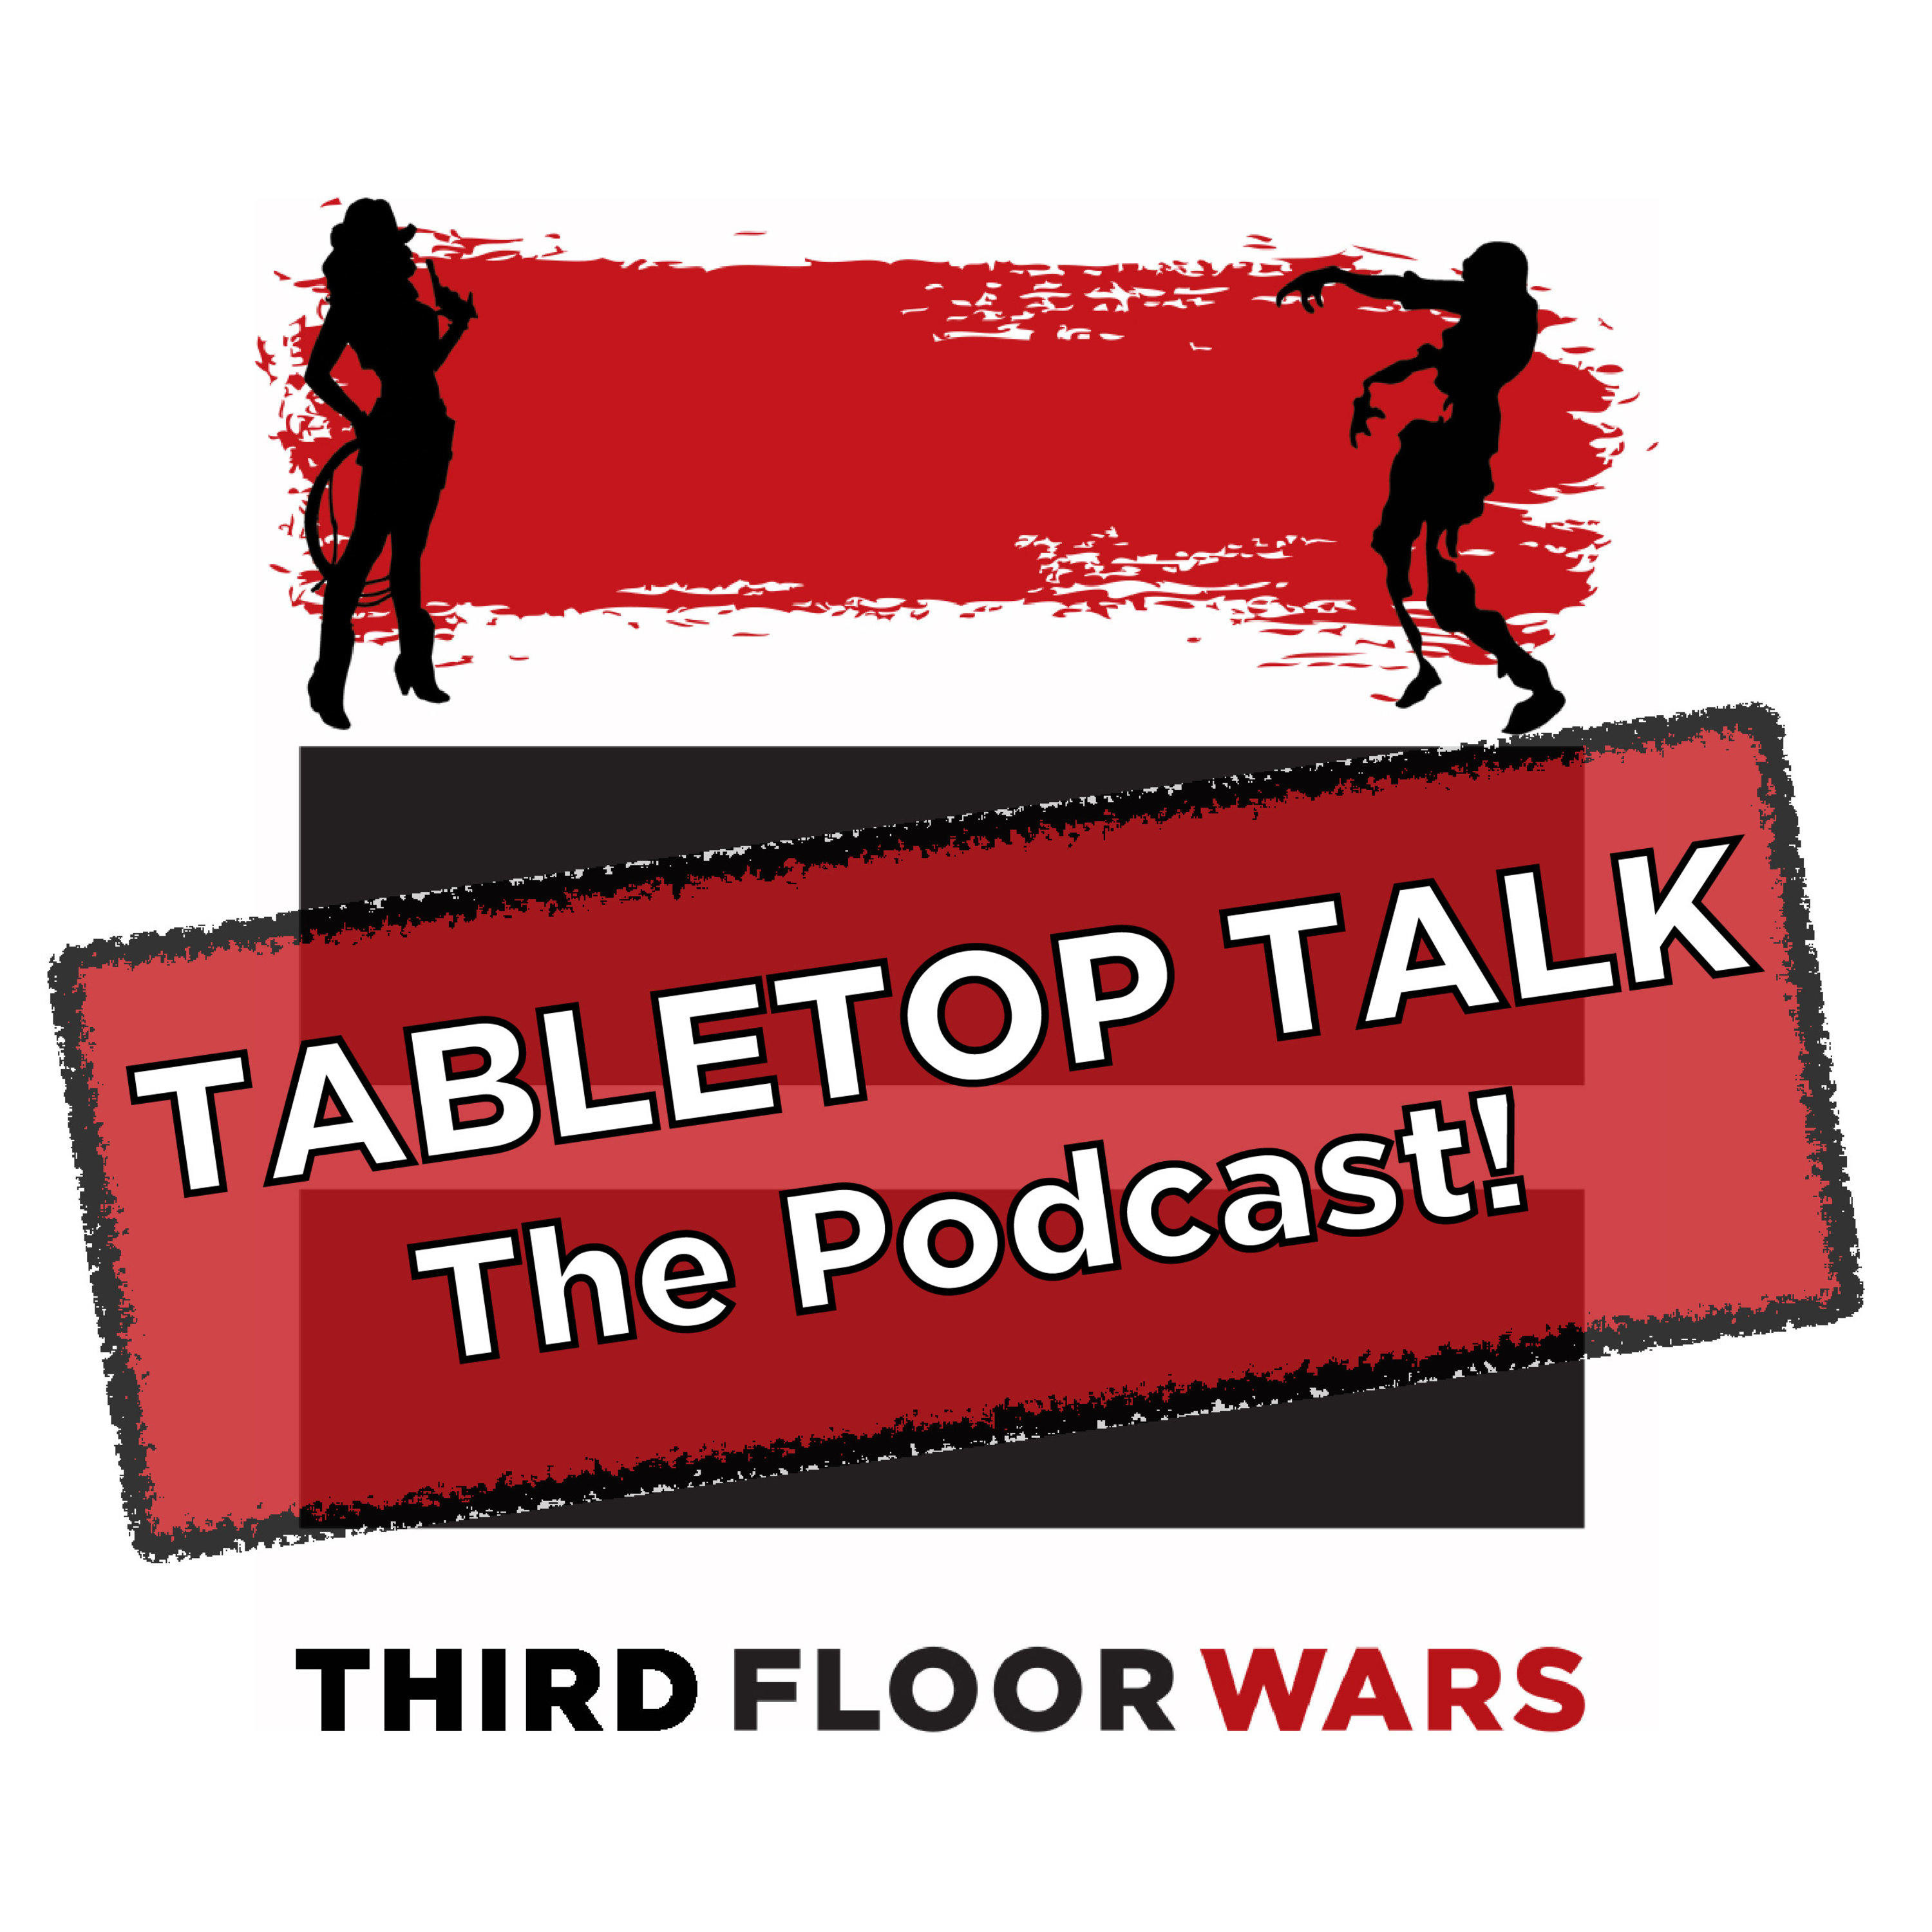 TABLETOP TALK - A Third Floor War's Podcast – Podcast – Podtail